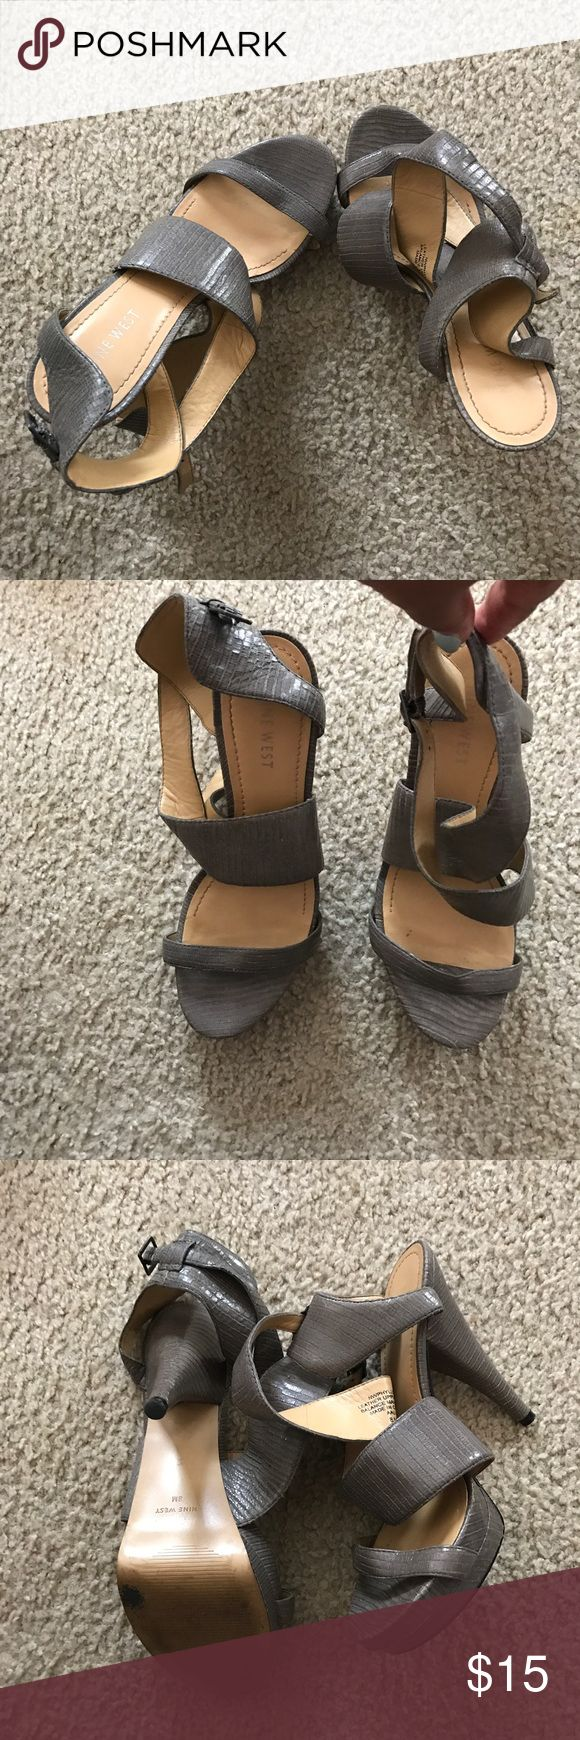 Grey heel sandals Grey heel sandals Nine West Shoes Heels